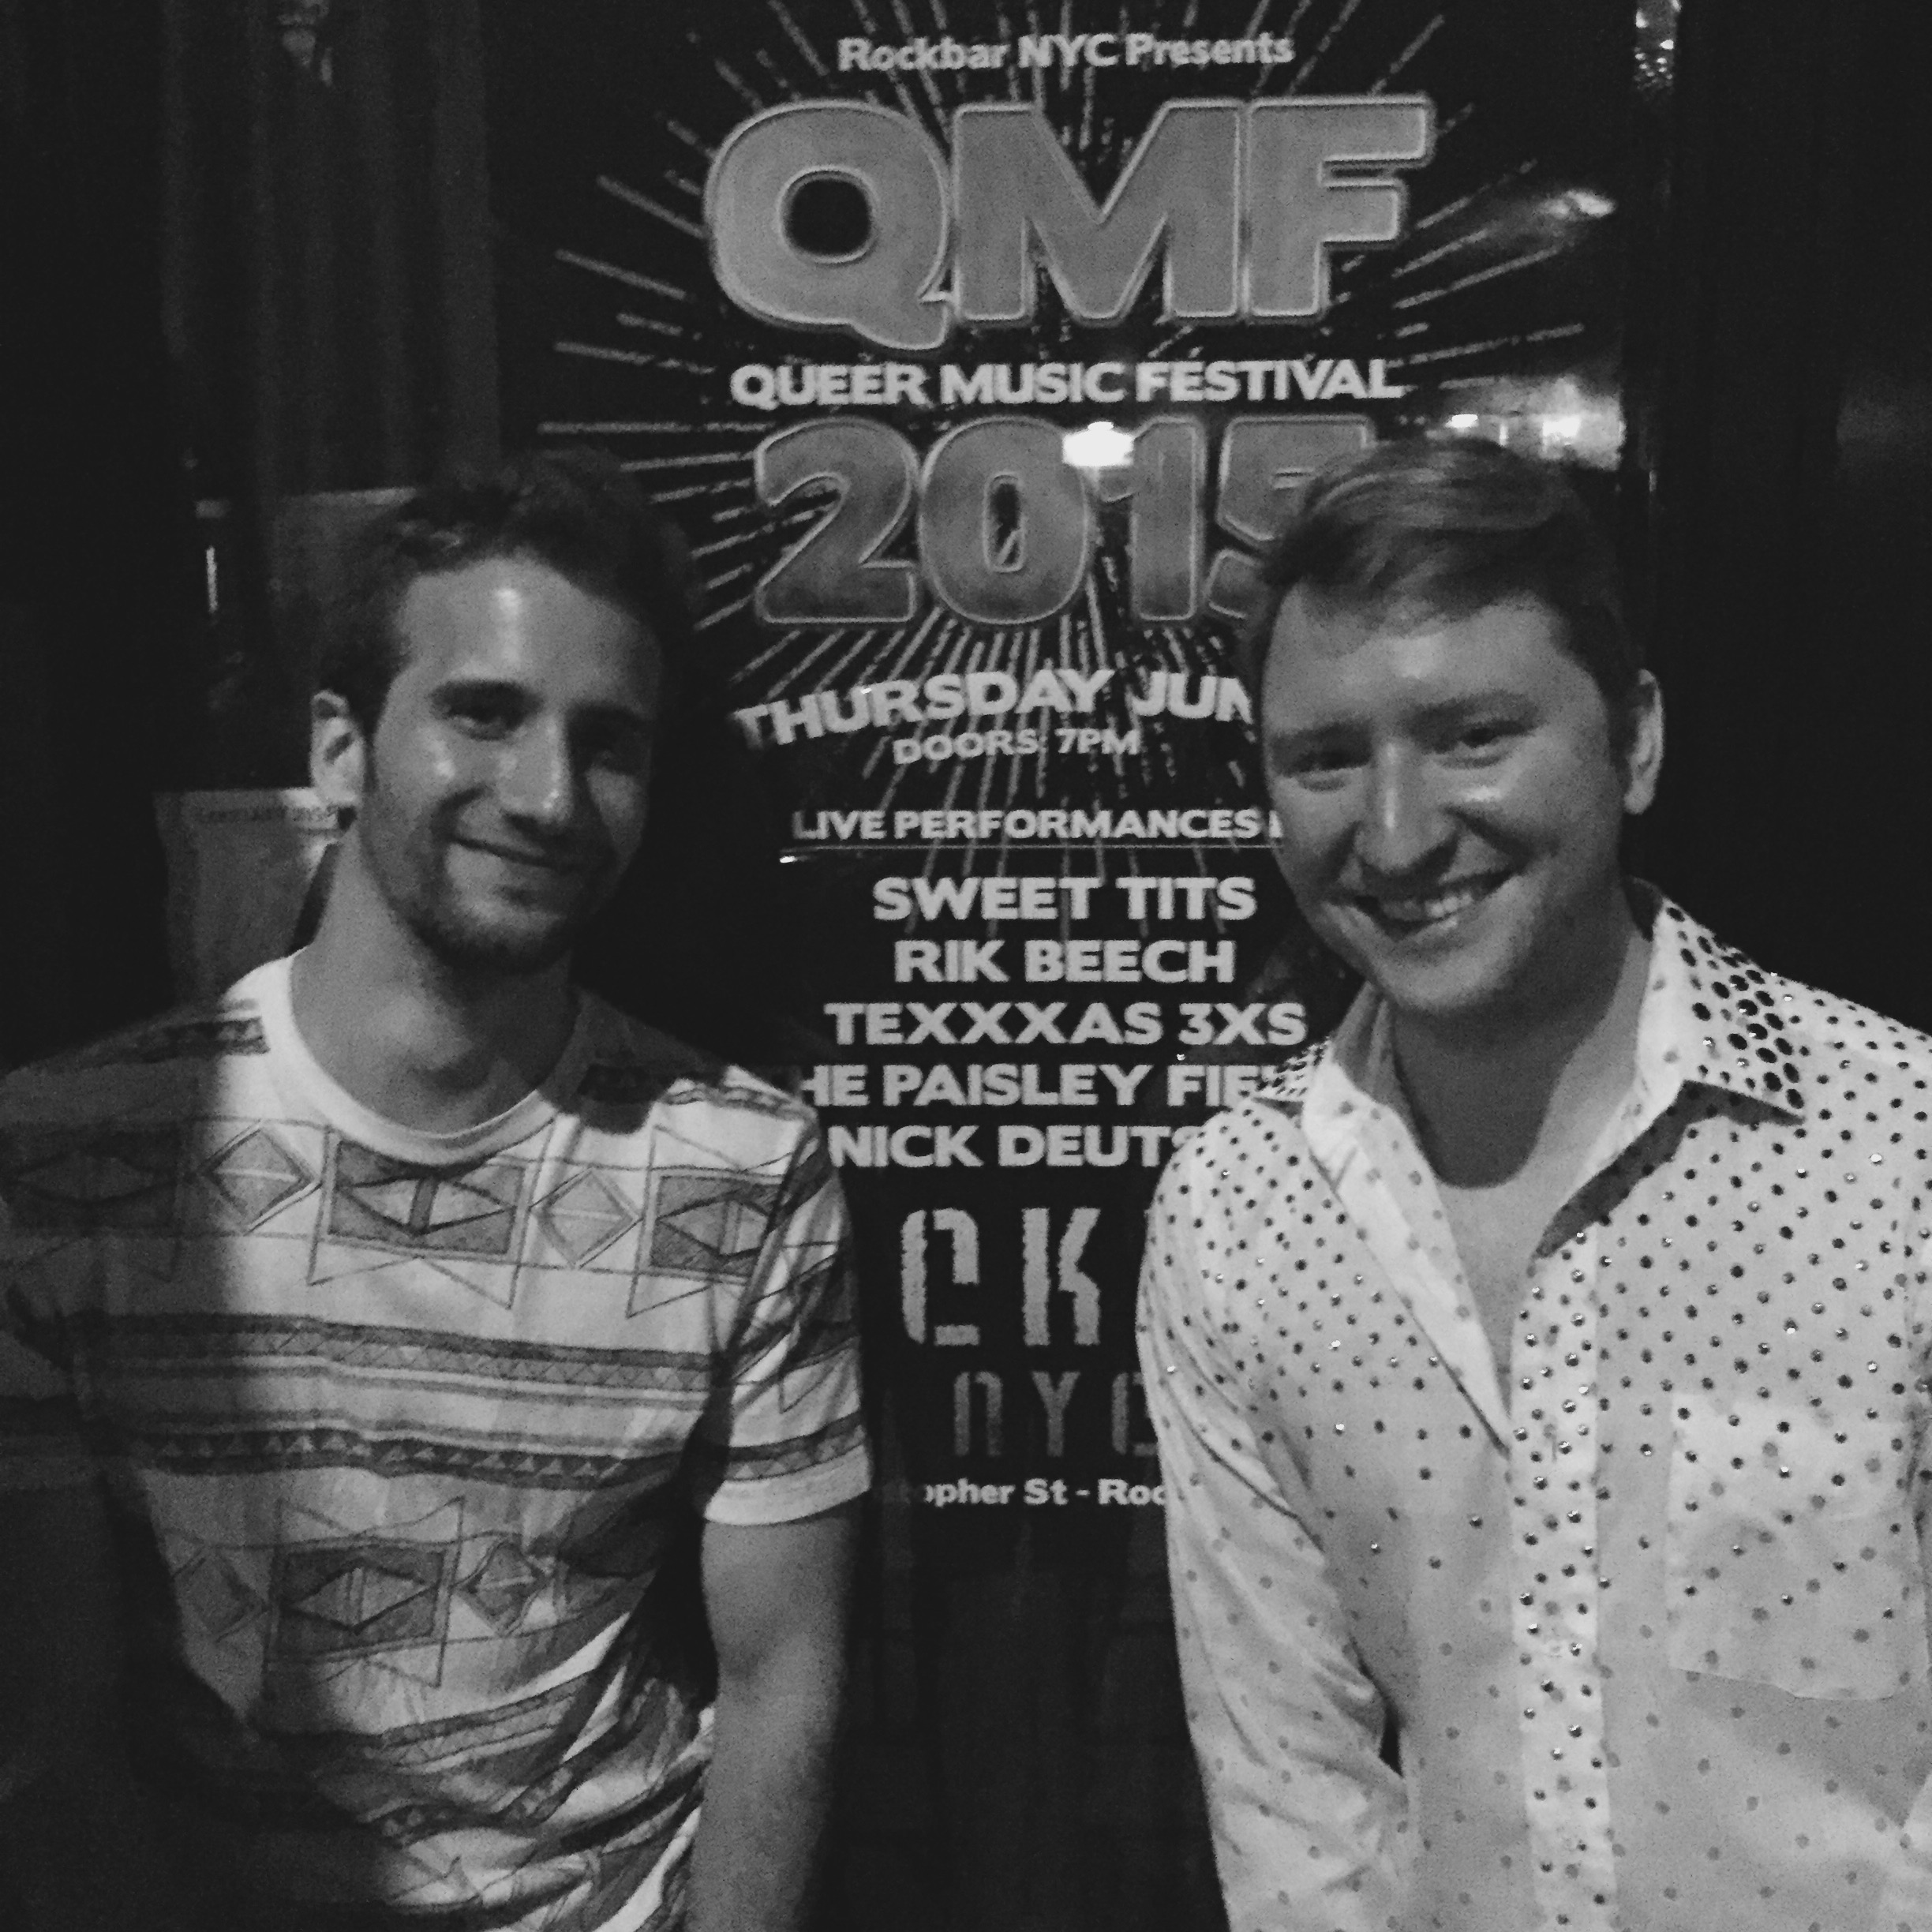 With Nick Deutsch last night, another performer at the Queer Music Festival.